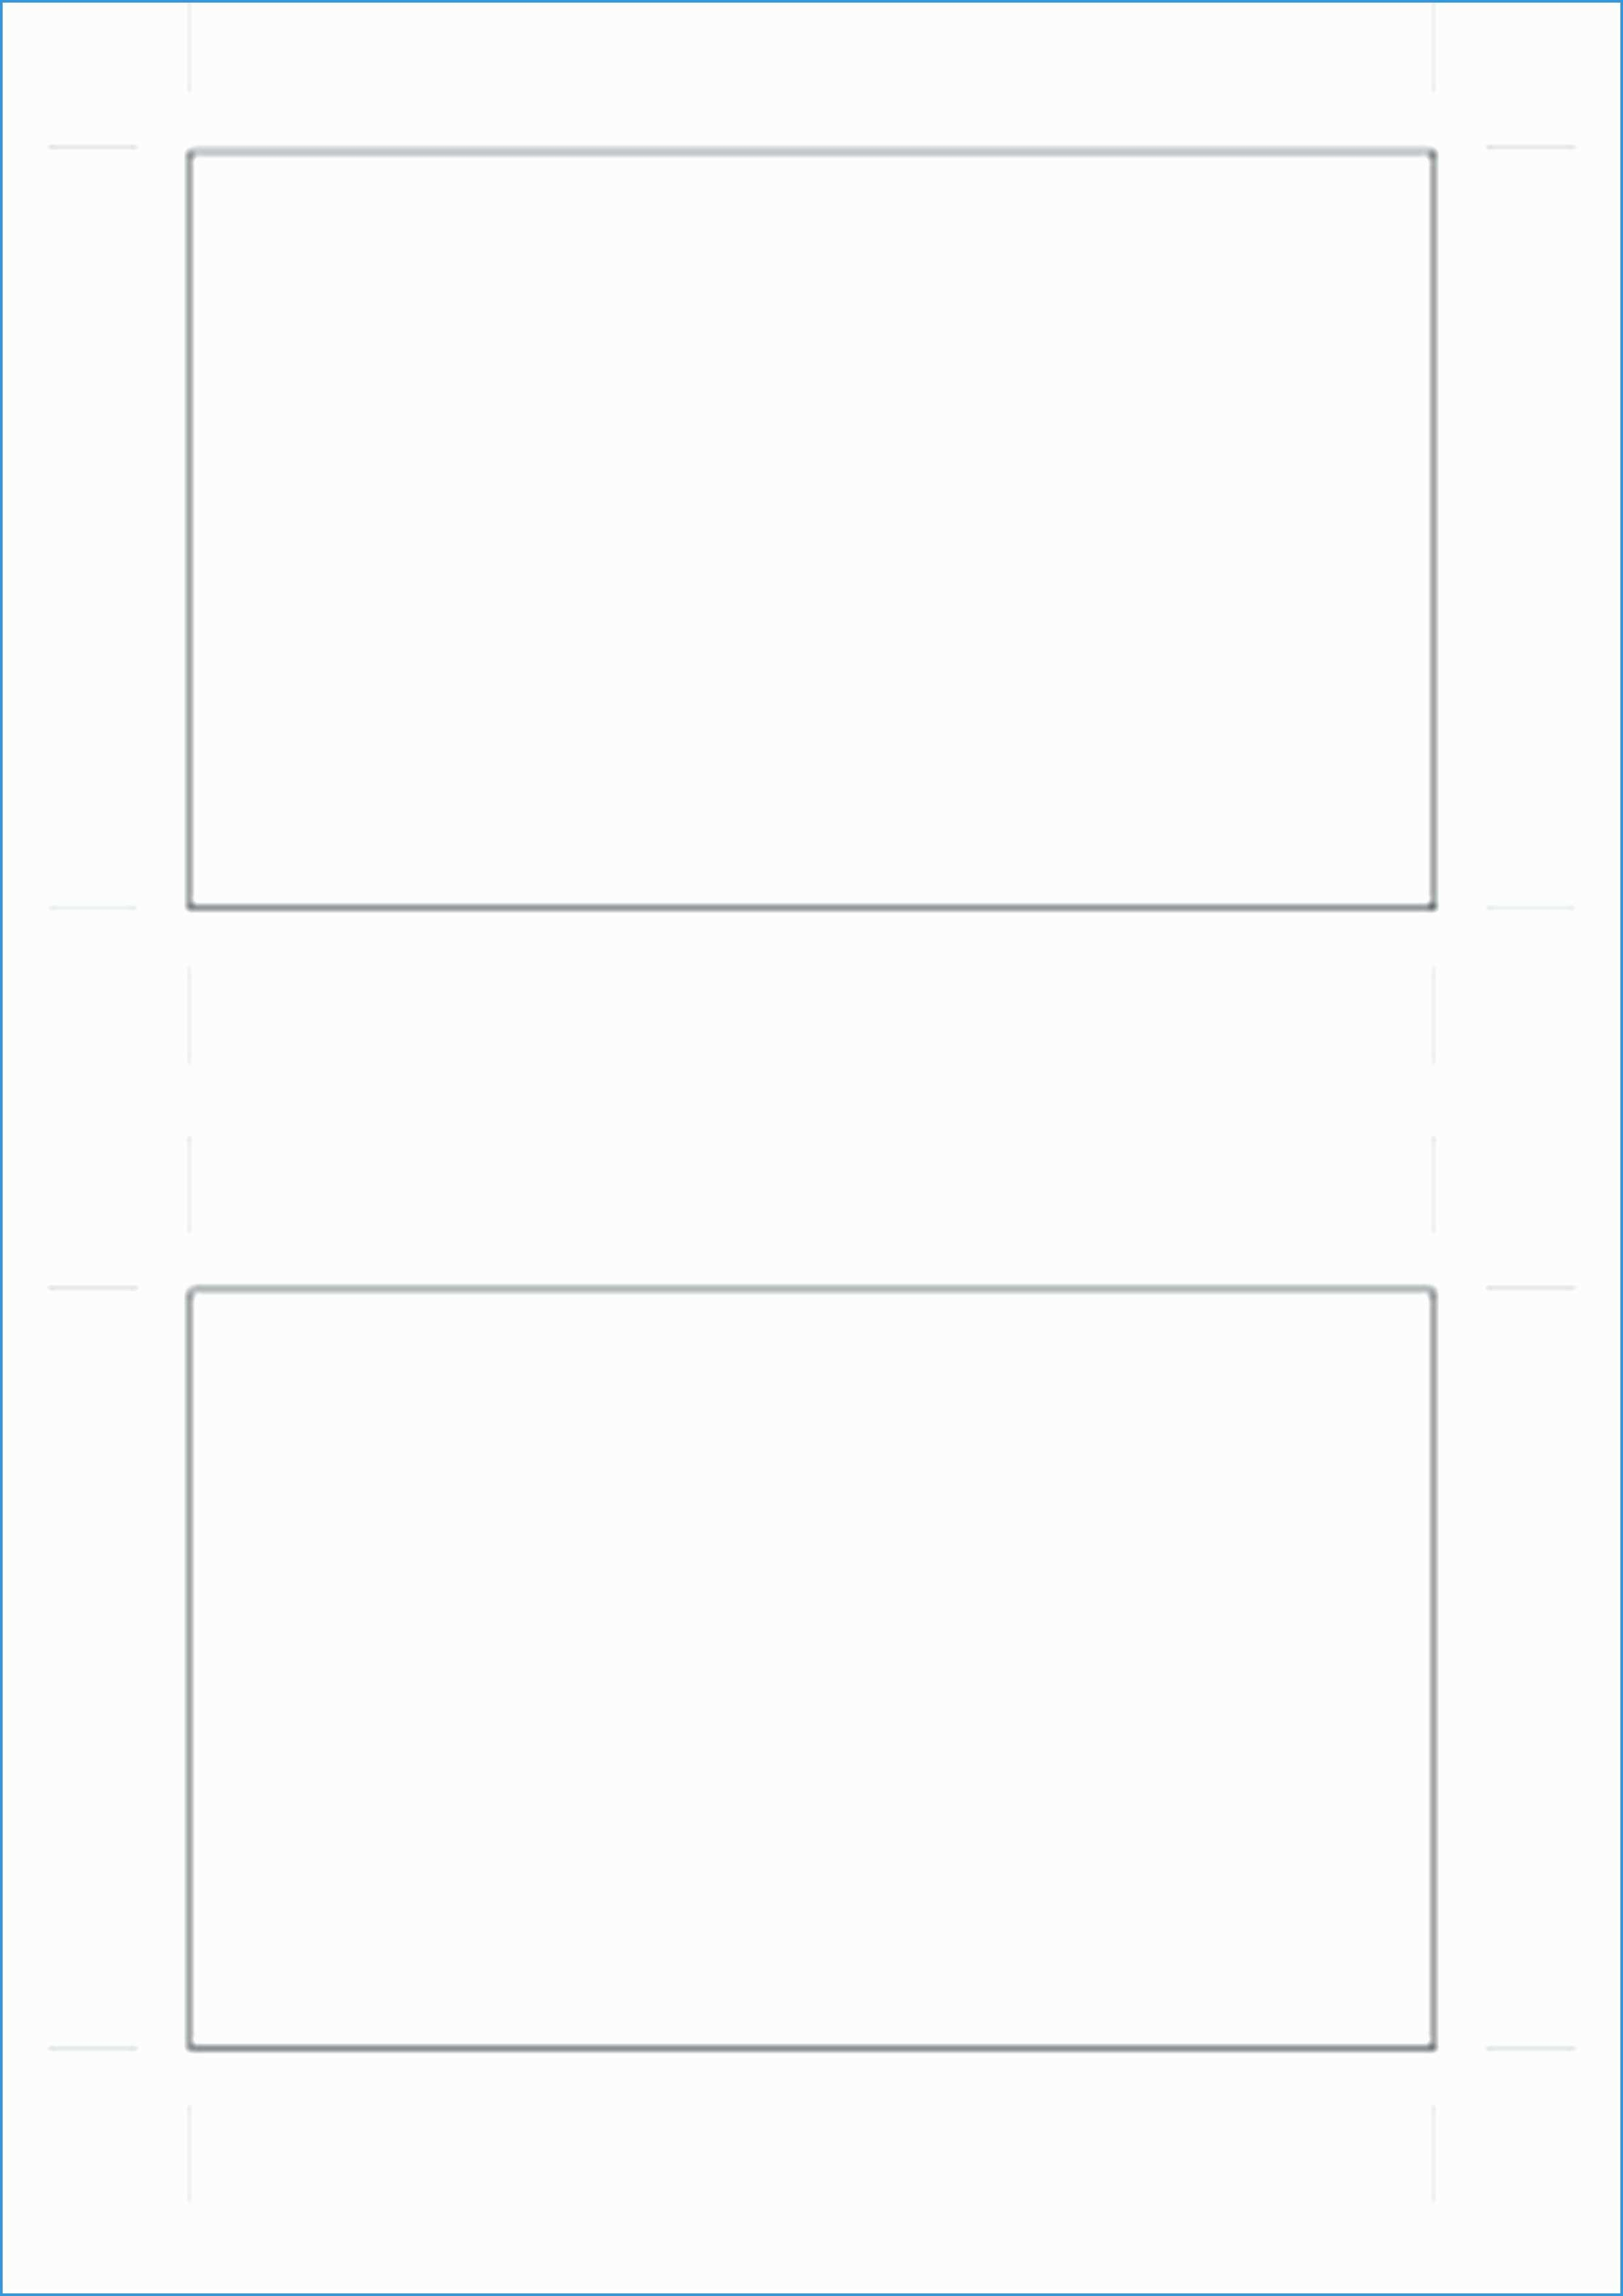 004 Blank Business Card Template Free Templates For Word Pertaining To Blank Business Card Template Download